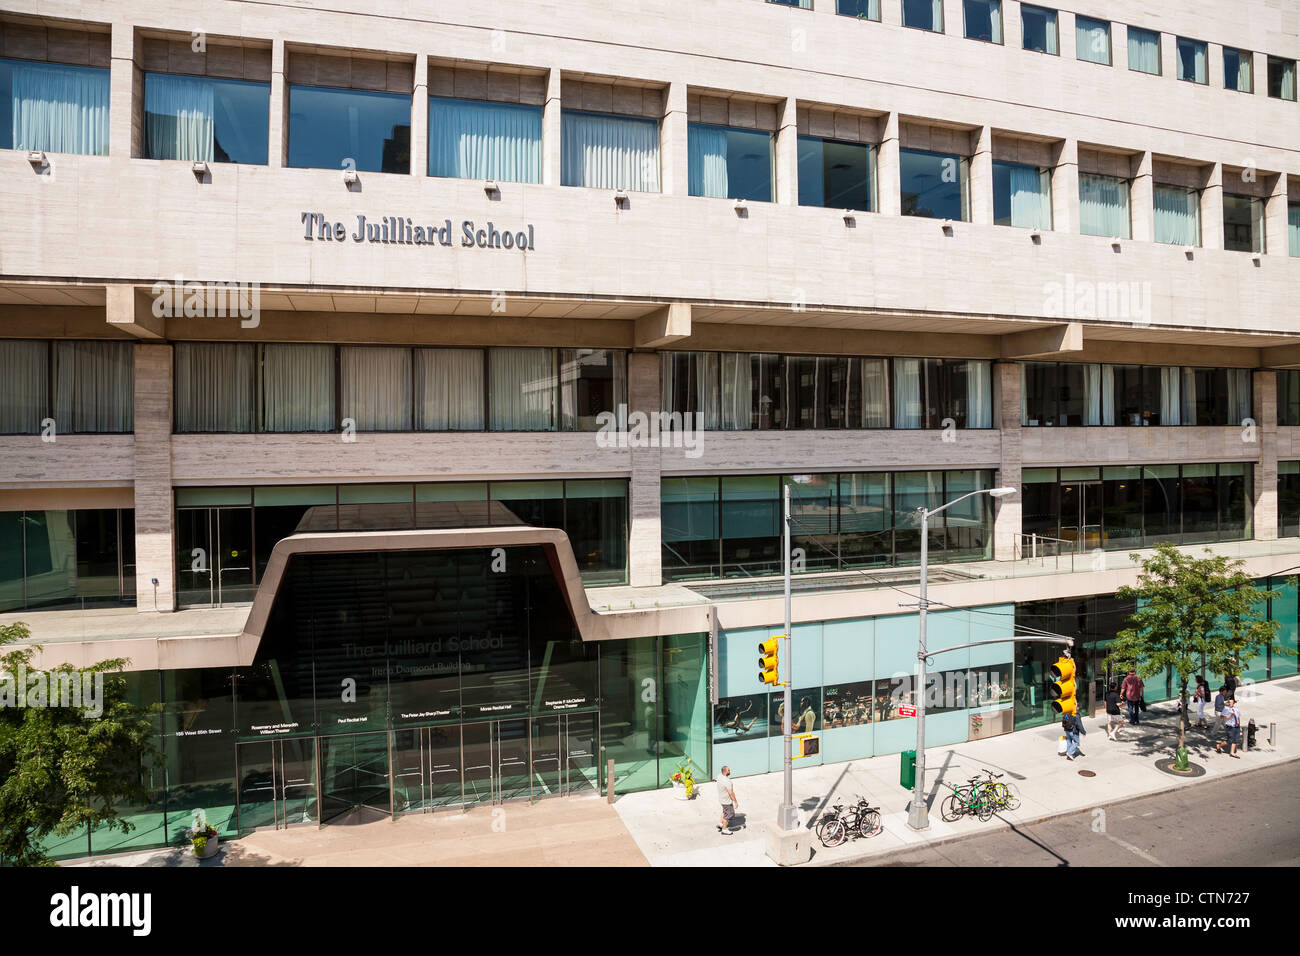 The Juilliard School, Lincoln Center for the Performing Arts